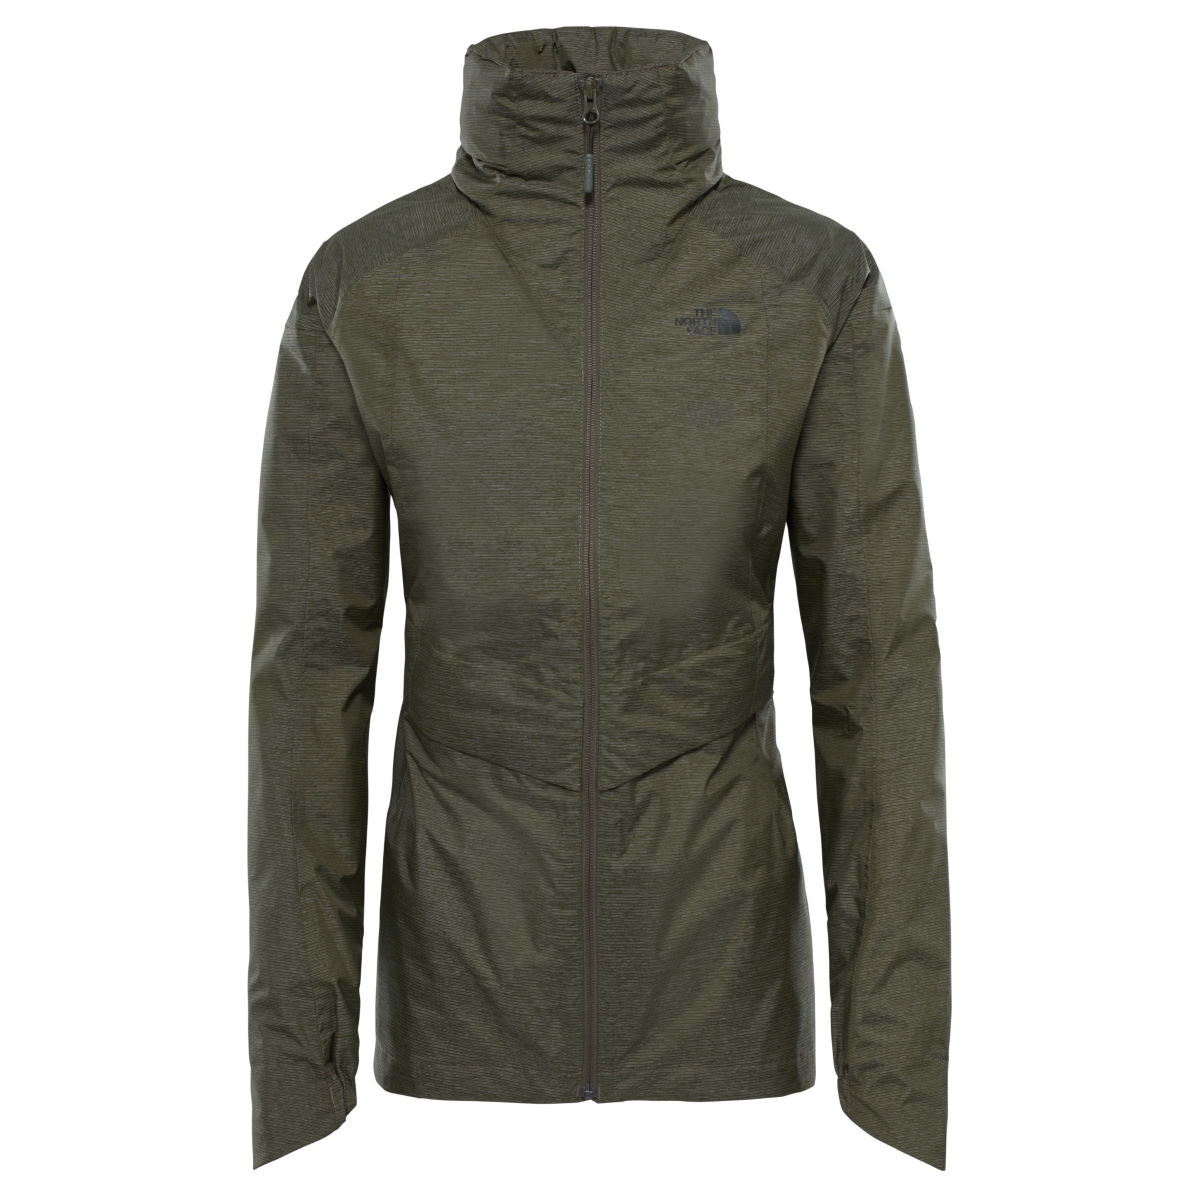 The North Face The North Face Womens Inlux Dryvent Jacket   Jackets